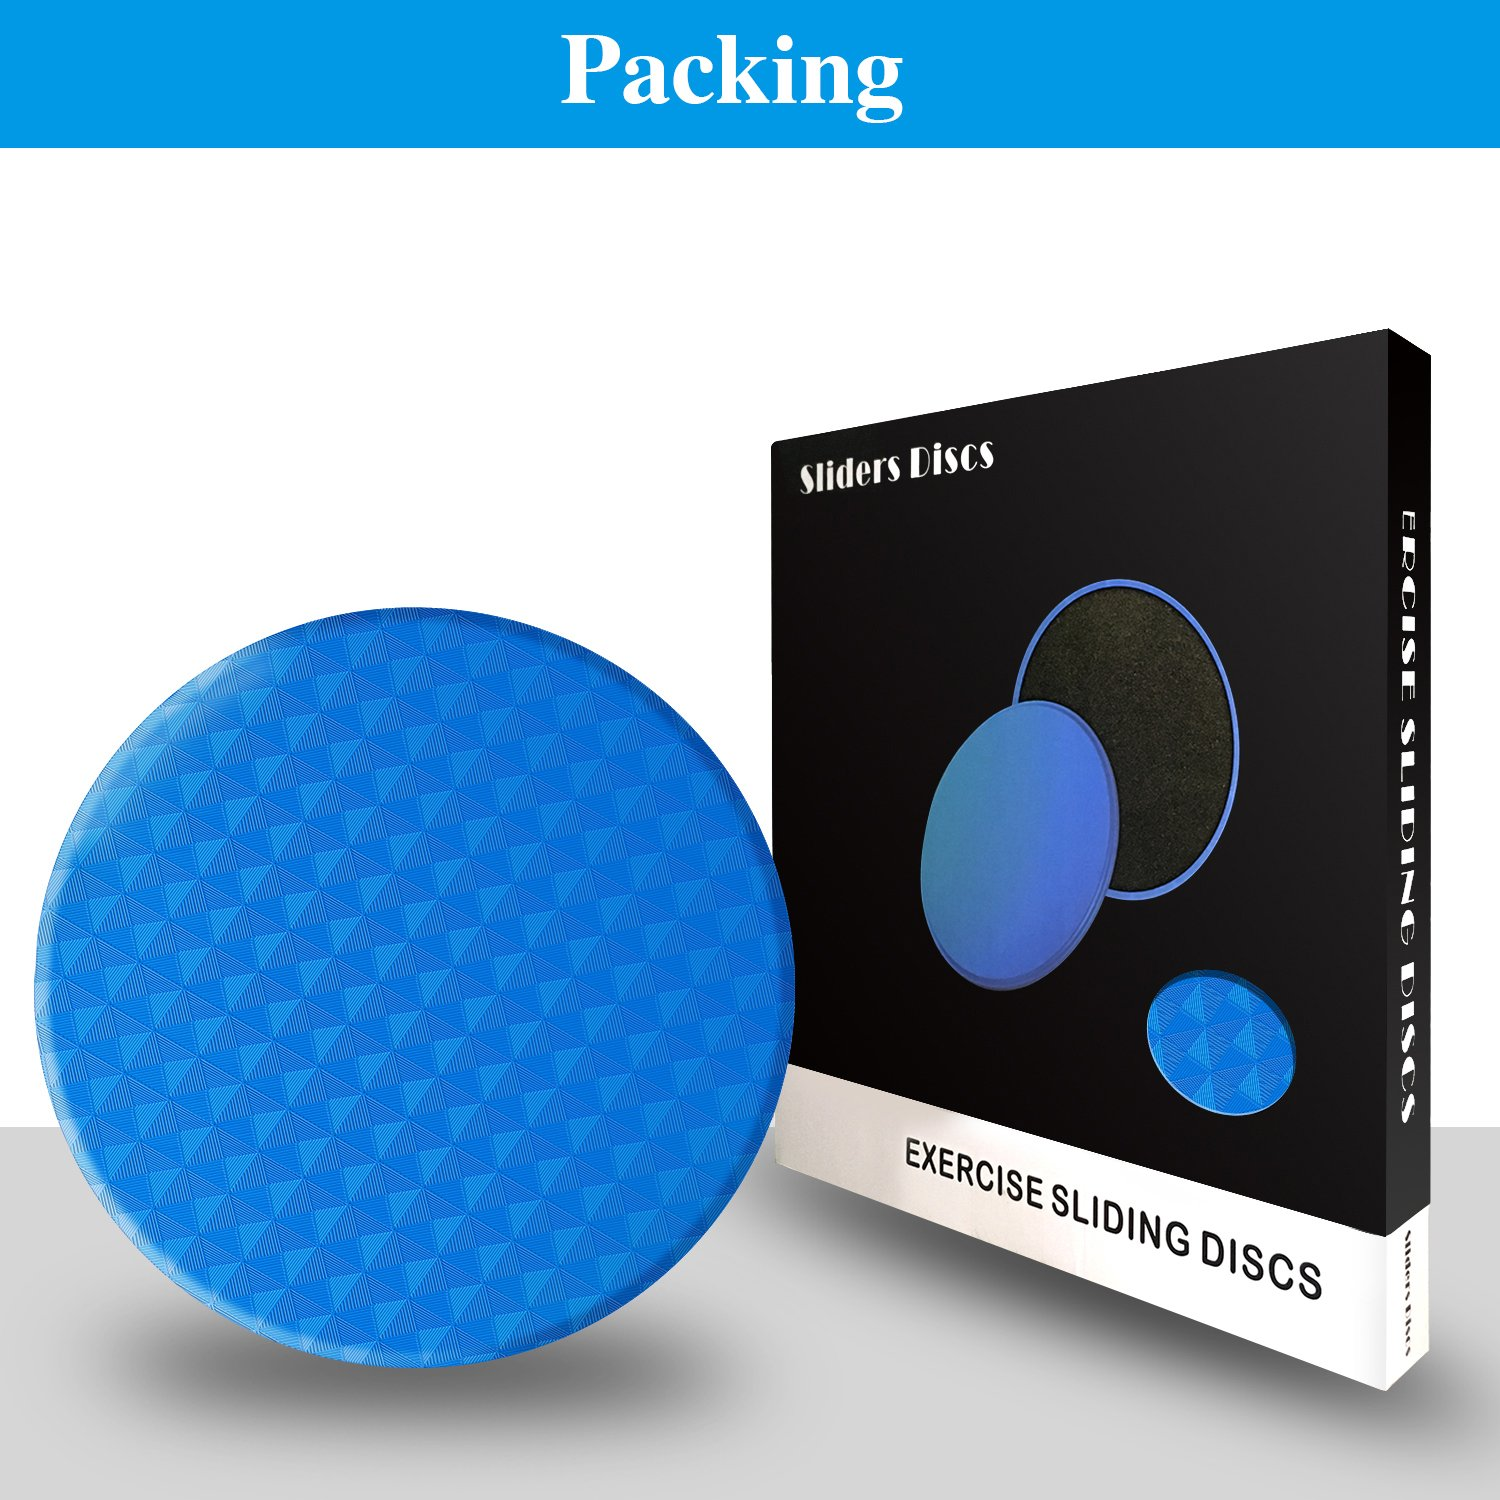 Paikelo Gliding discs, Double Sided Exercise Sliders, 2 Dual Sided Gliding Sliding Discs for Core Fitness, Gym, Carpet and Hardwood Floors Home Abdominal Exercise Equipment-Blue by CoobalPaikelo (Image #1)